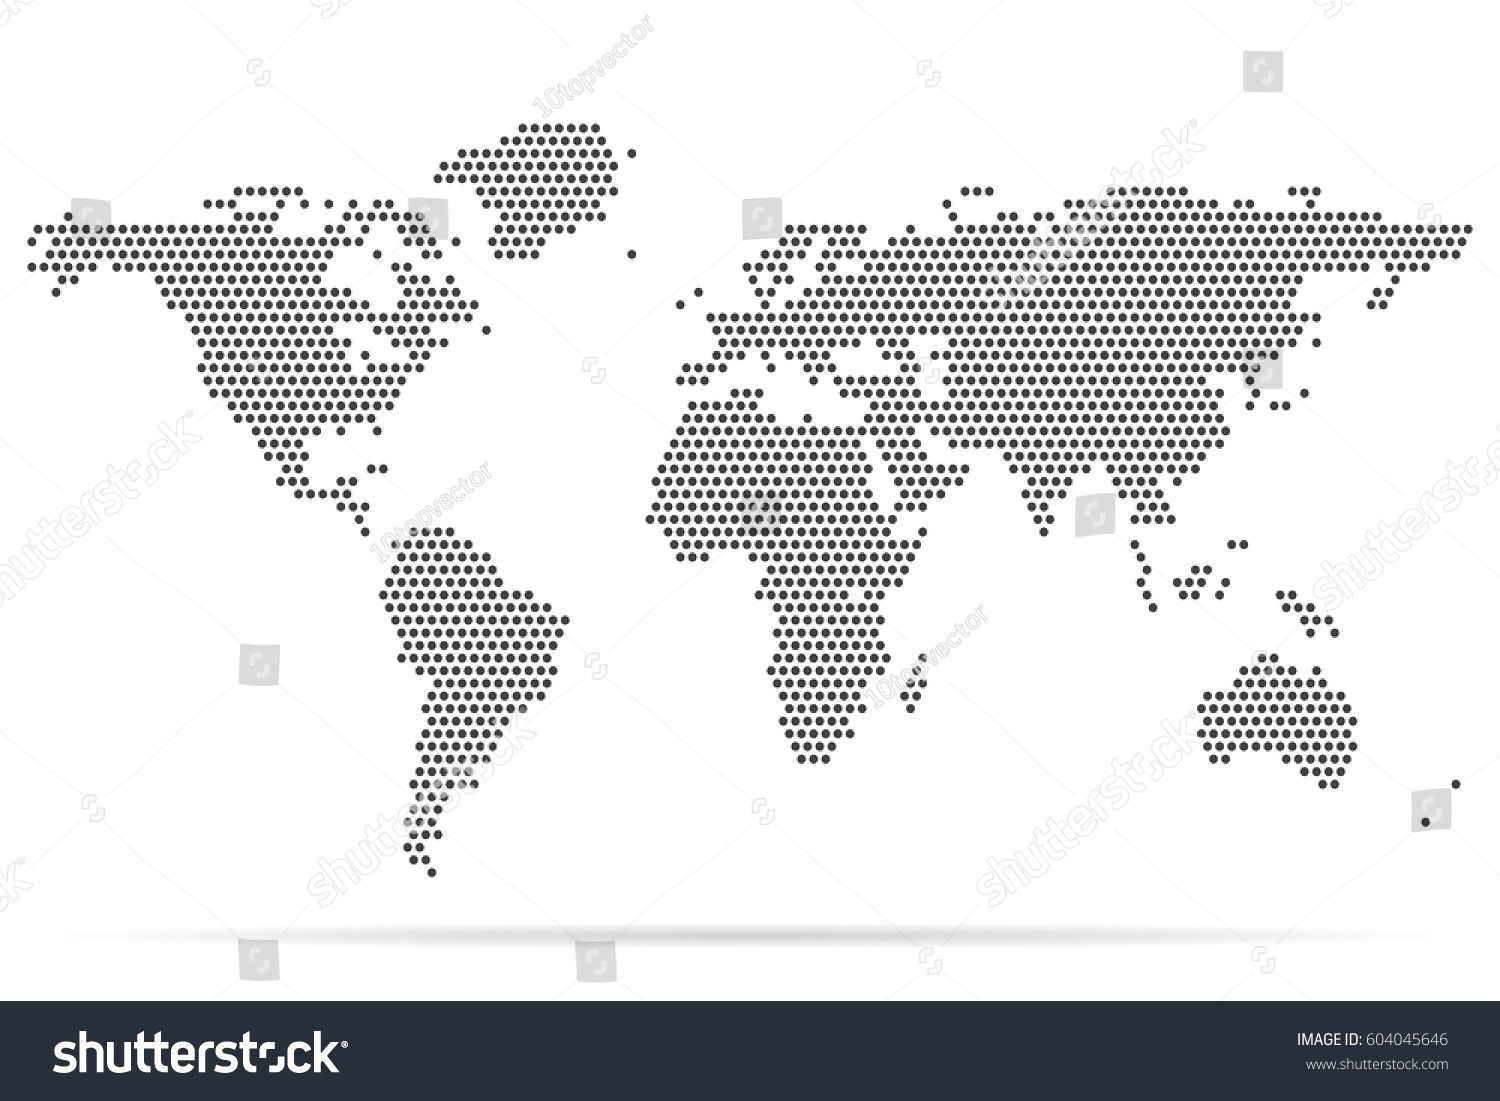 Pixel map world dotted world map stock vector hd royalty free pixel map of world dotted world map vector illustration gumiabroncs